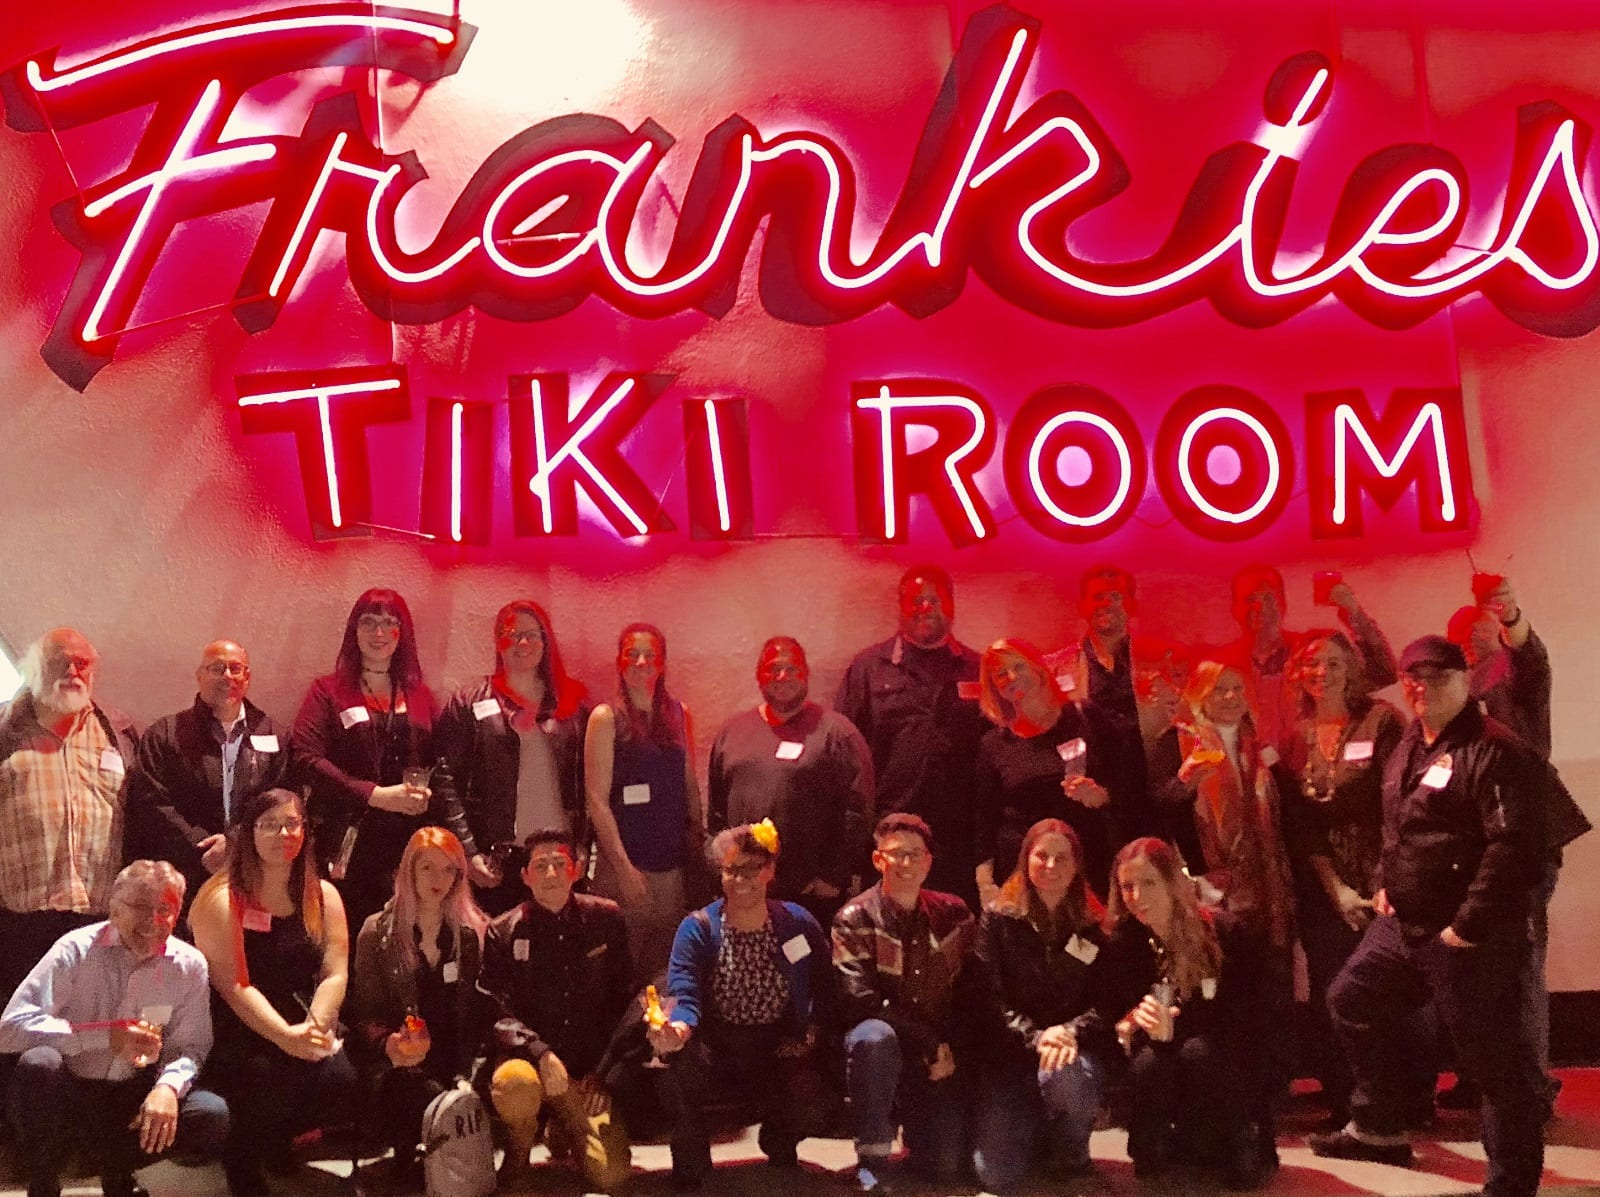 The Themed Entertainment Association meeting at Frankie's Tiki Room